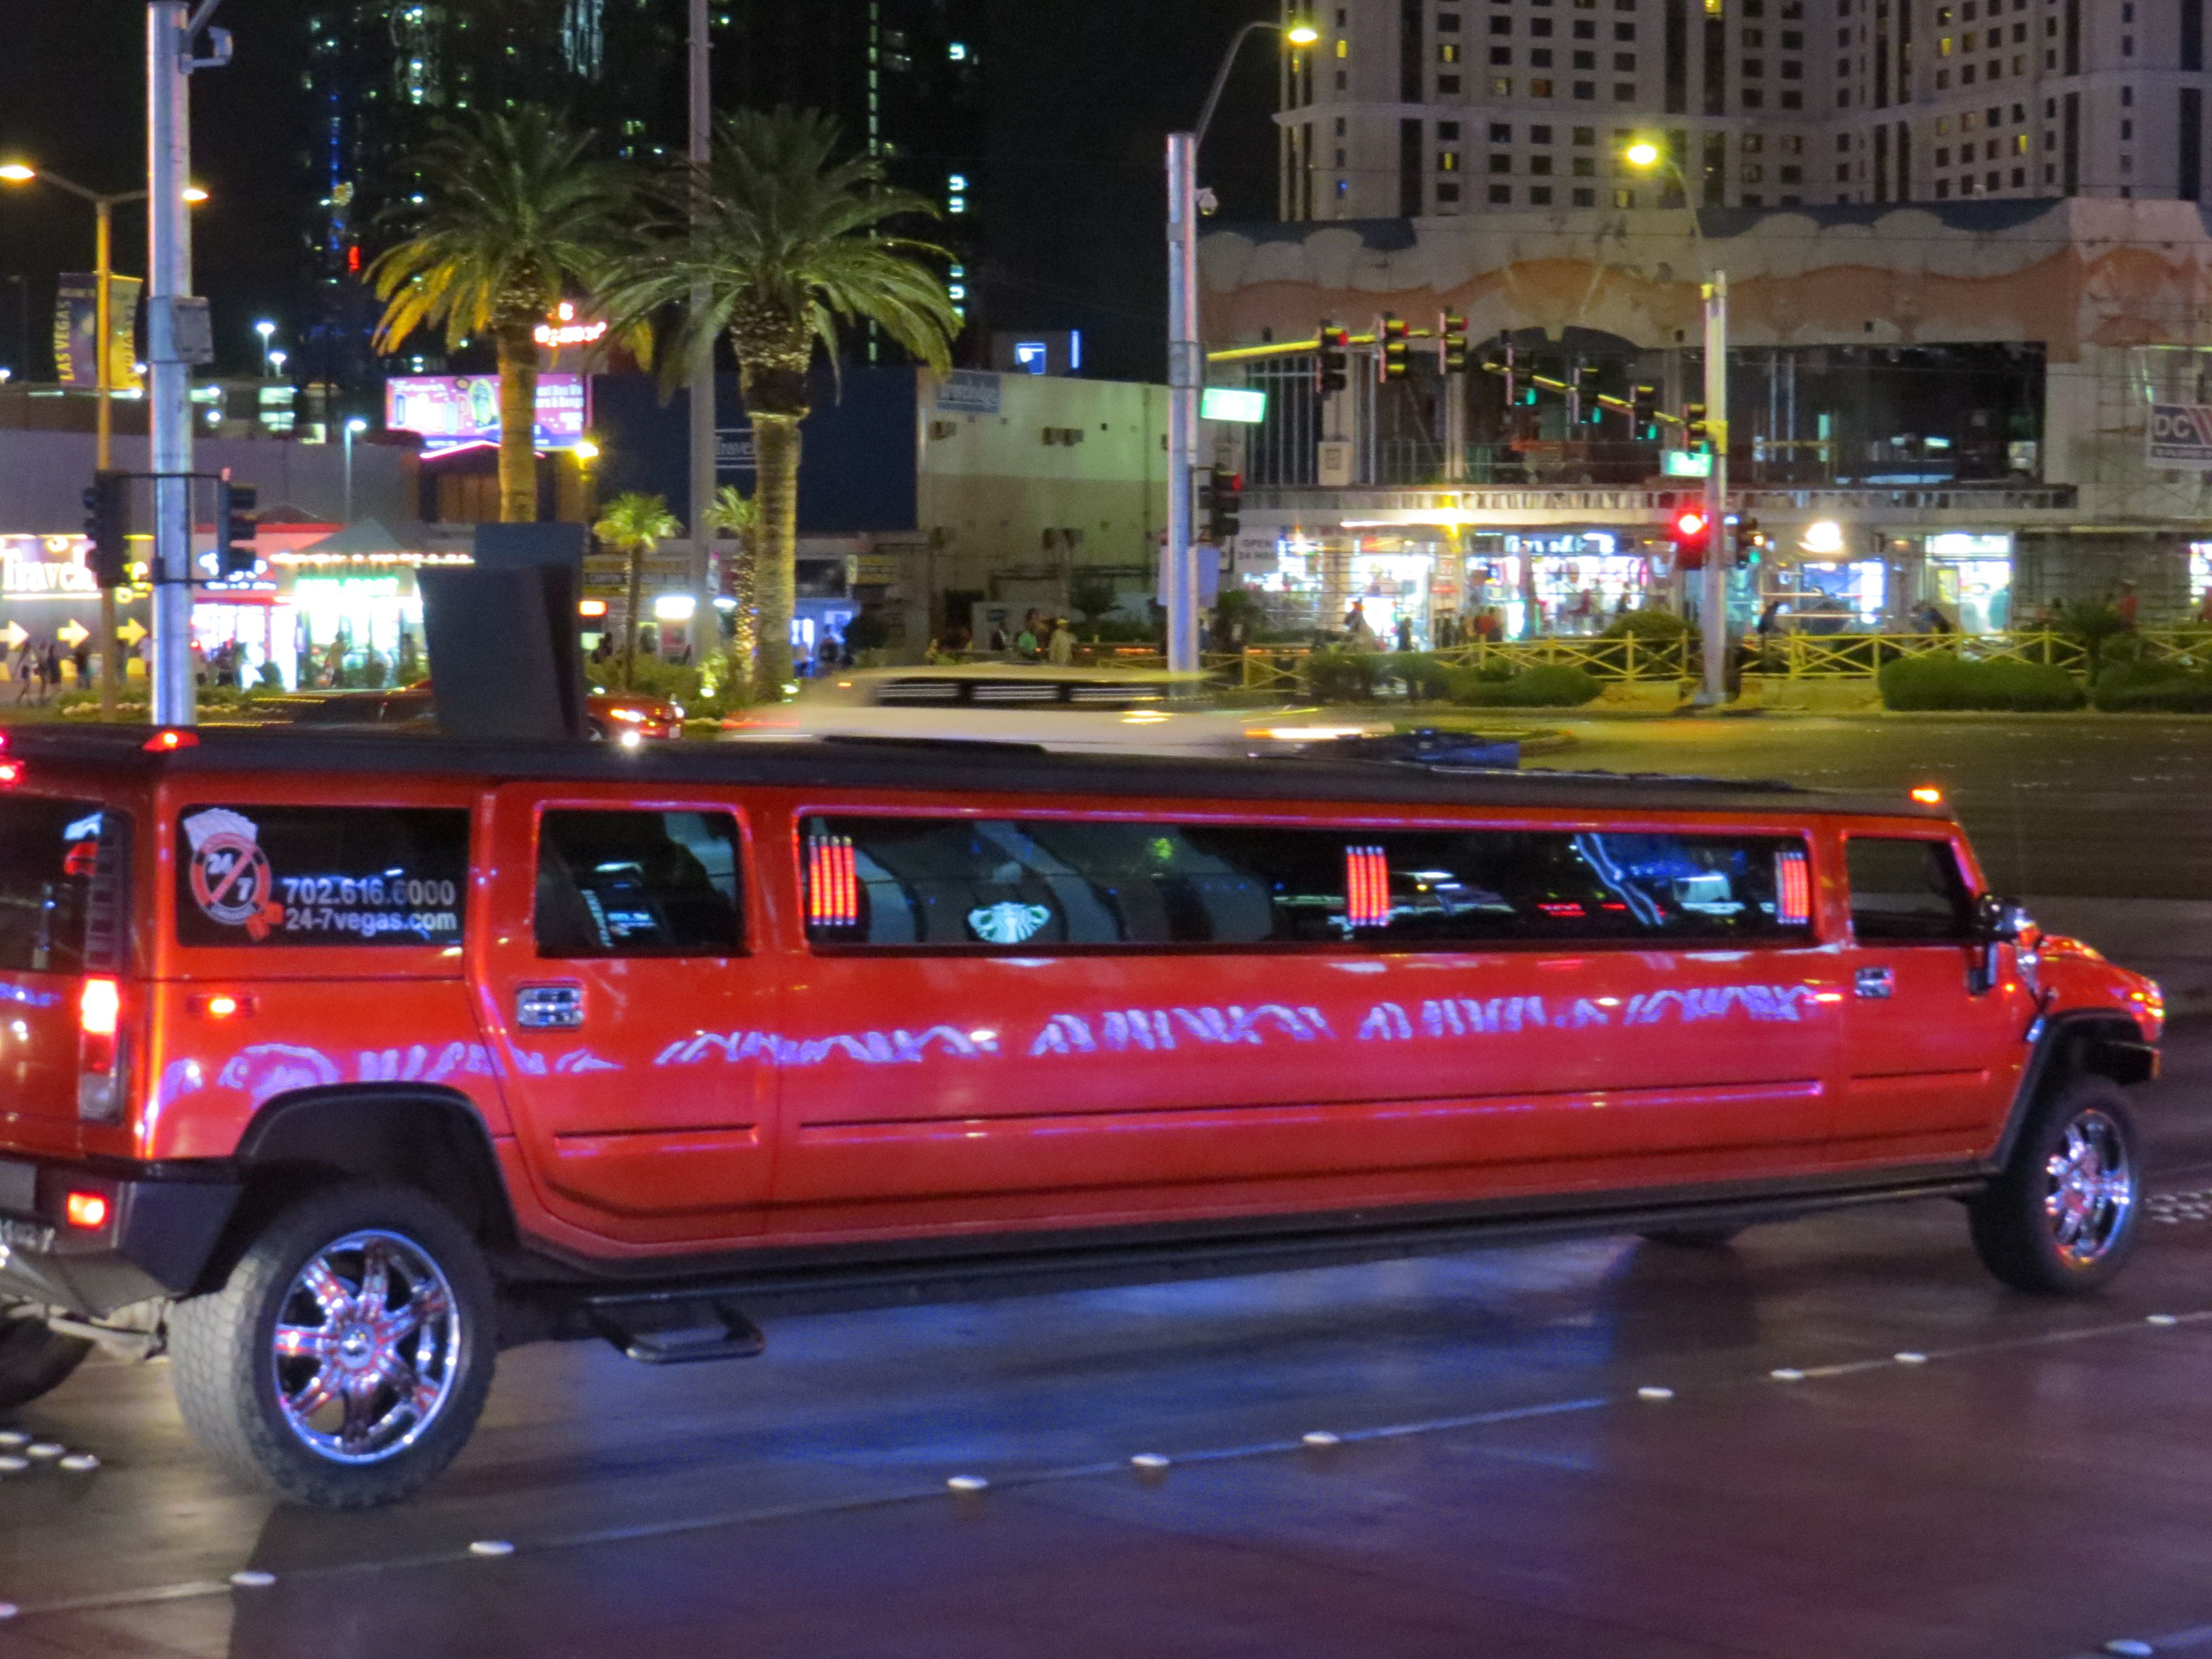 Hummer limo for your Bachelorette bachlor wedding party from